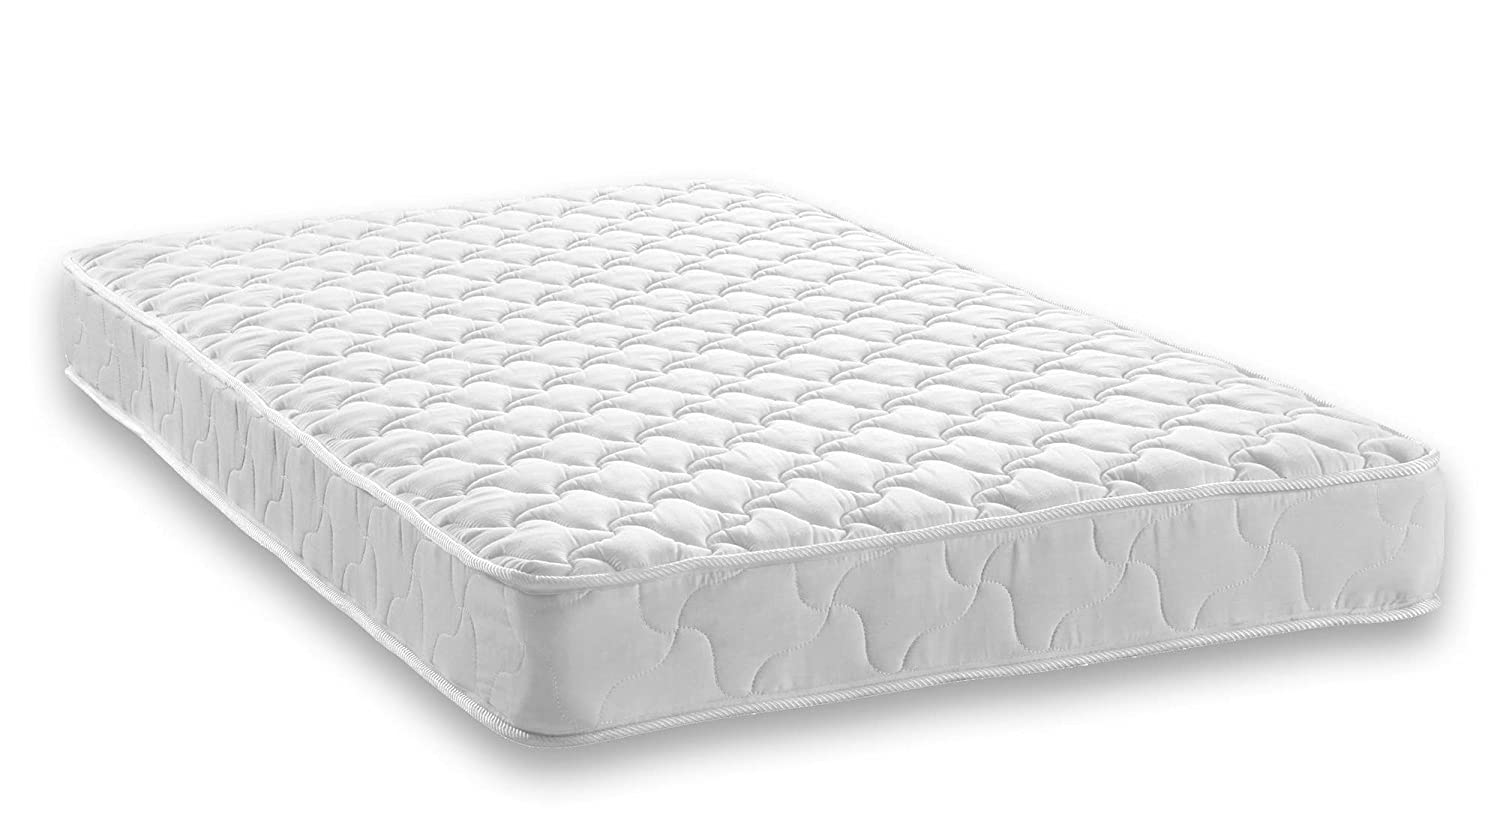 ... 6 Inch Coil Mattress by Signature Sleep made with CertiPUR-US Certified  Foam, 6 Inch Twin Mattress, White. Available in Multiple Sizes: Kitchen &  Dining